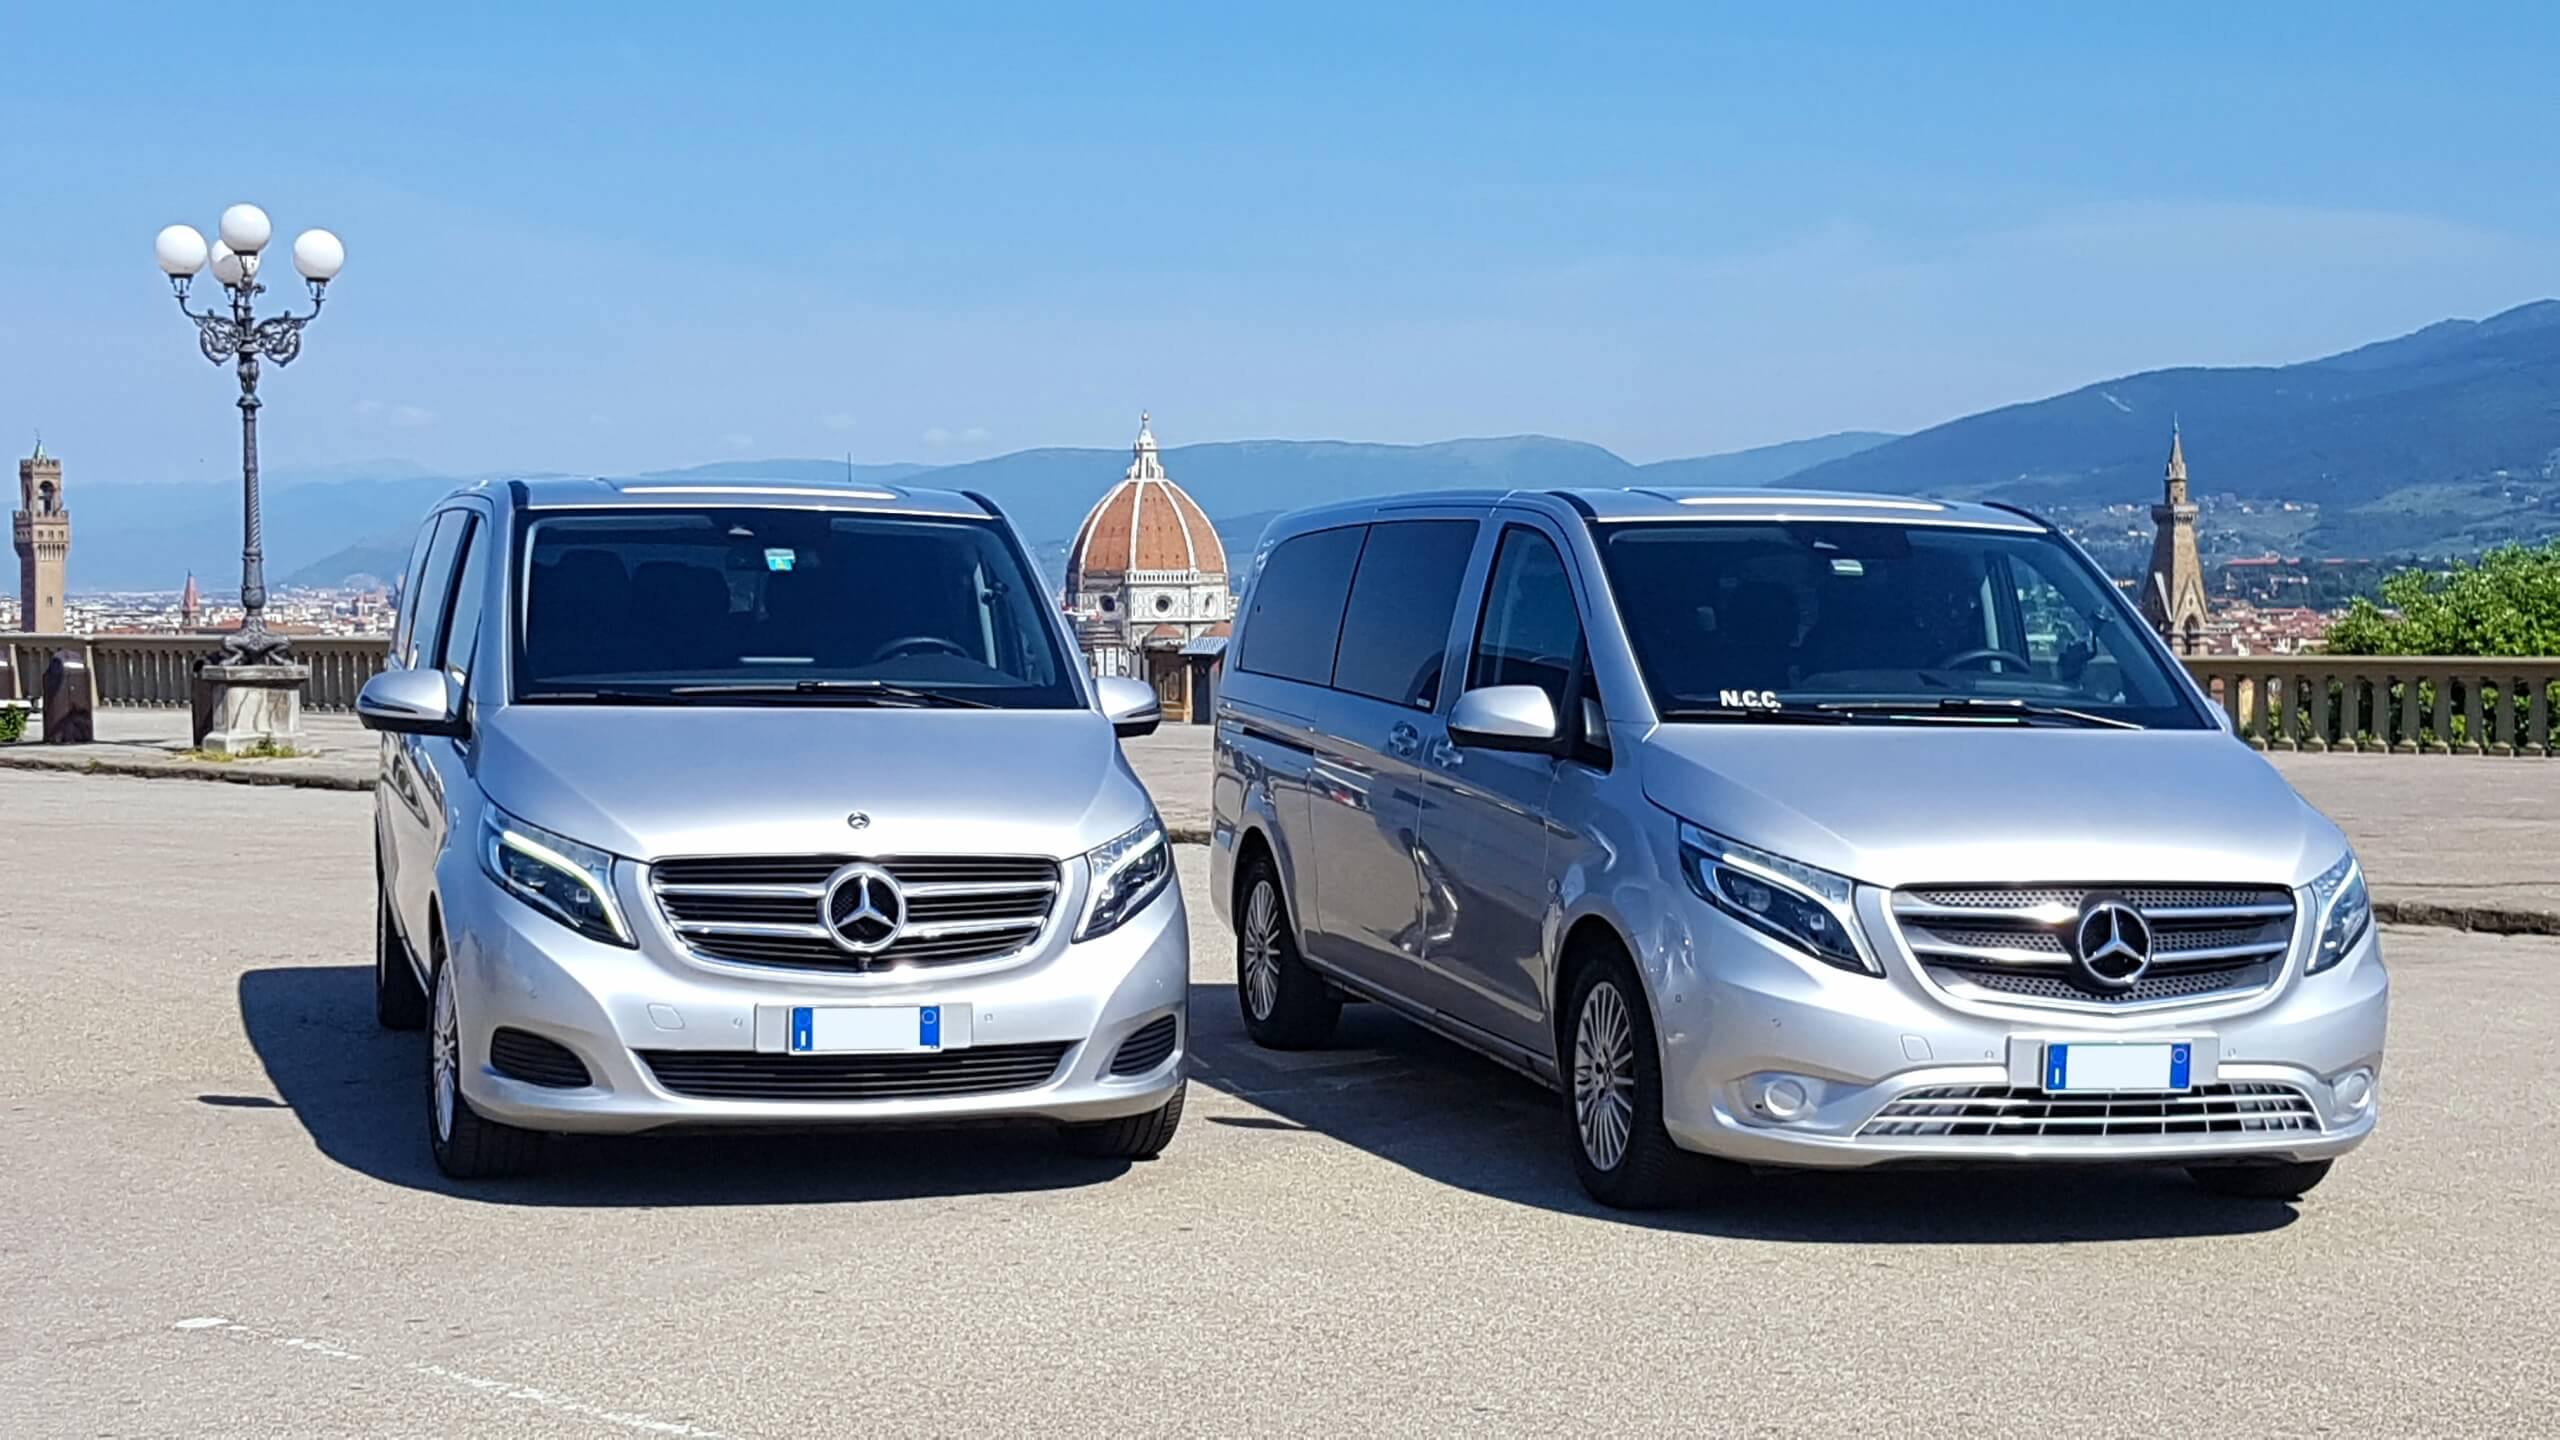 Tusci car Service private excursions in Tuscany Florence